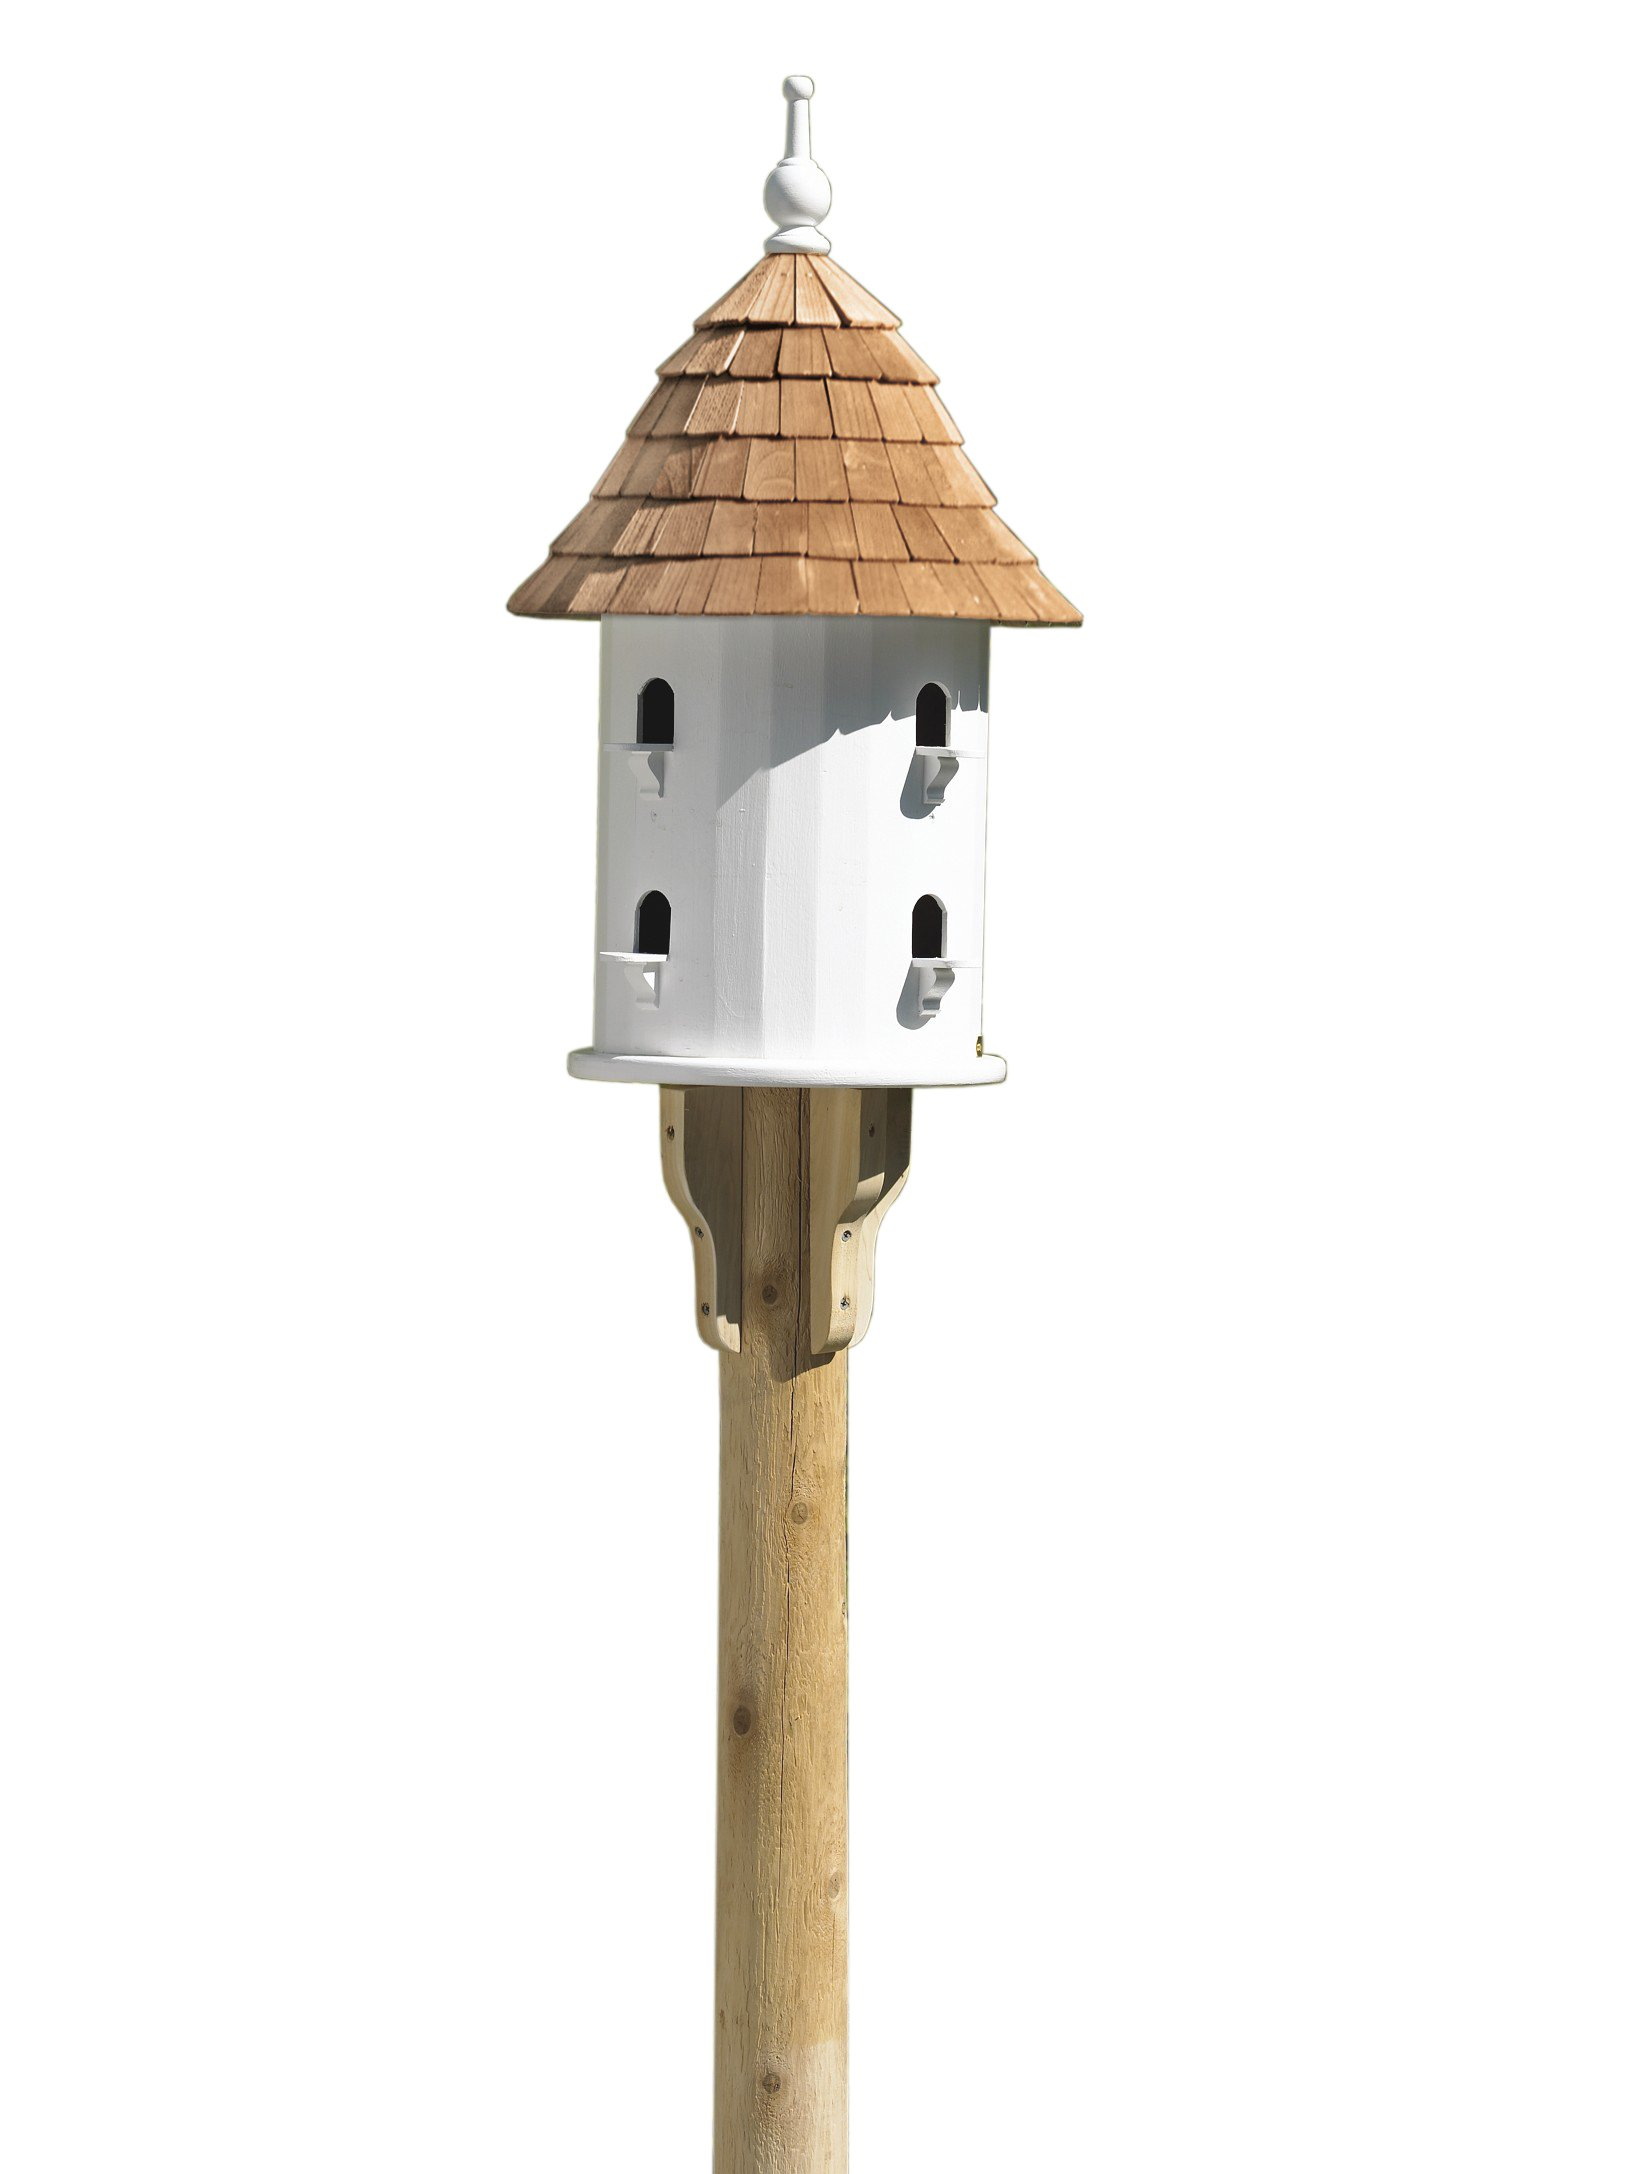 Lazy Hill Farm Designs 41401 Bird House White Solid Cellular Vinyl with Natural Redwood Shingle Roof, 16-Inch Wide by 28-Inch Tall